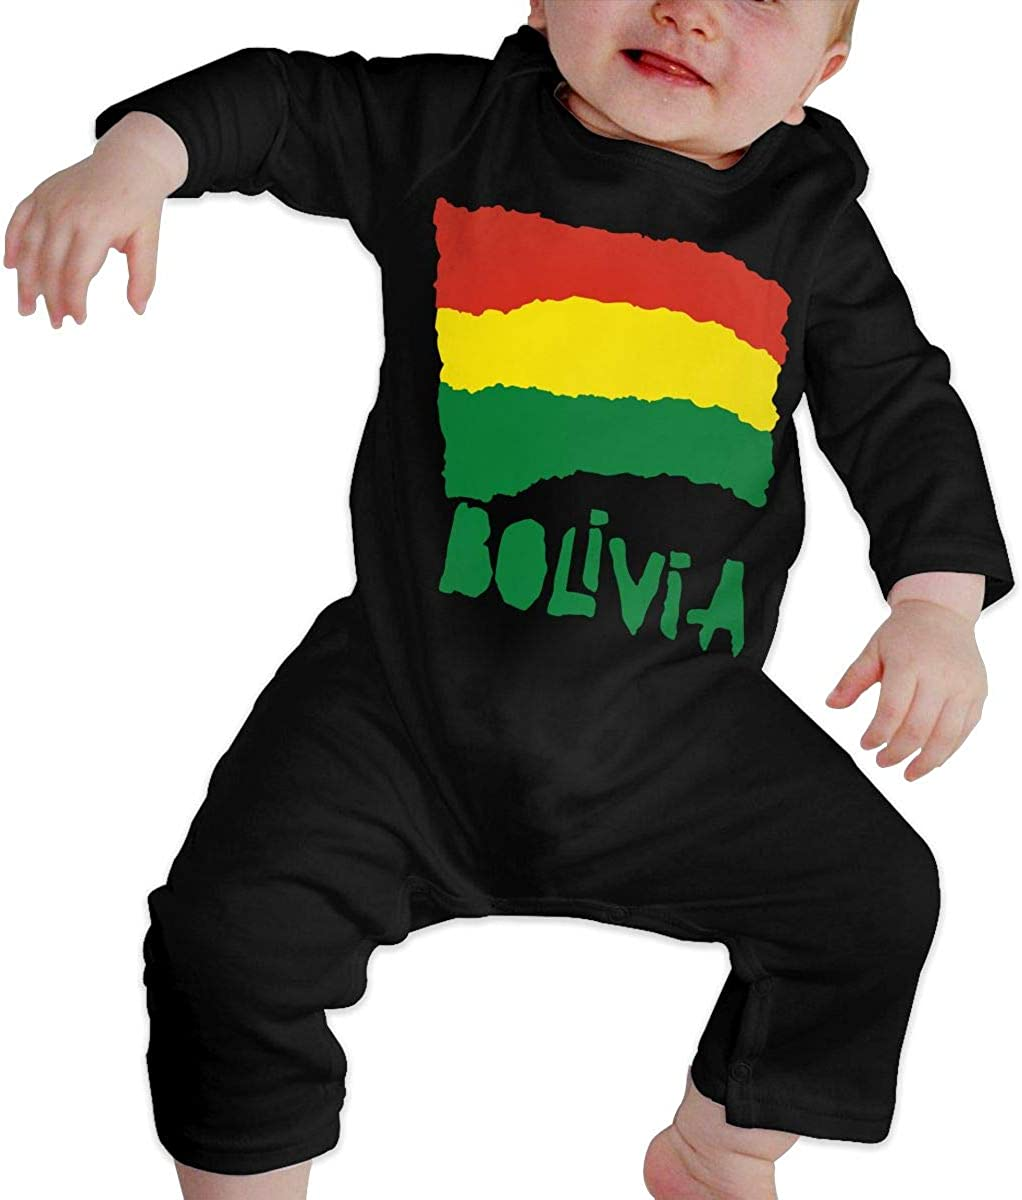 Bolivia Flag Organic One-Piece Kid Pajamas Clothes BKNGDG8Q Unisex Baby Romper Jumpsuit